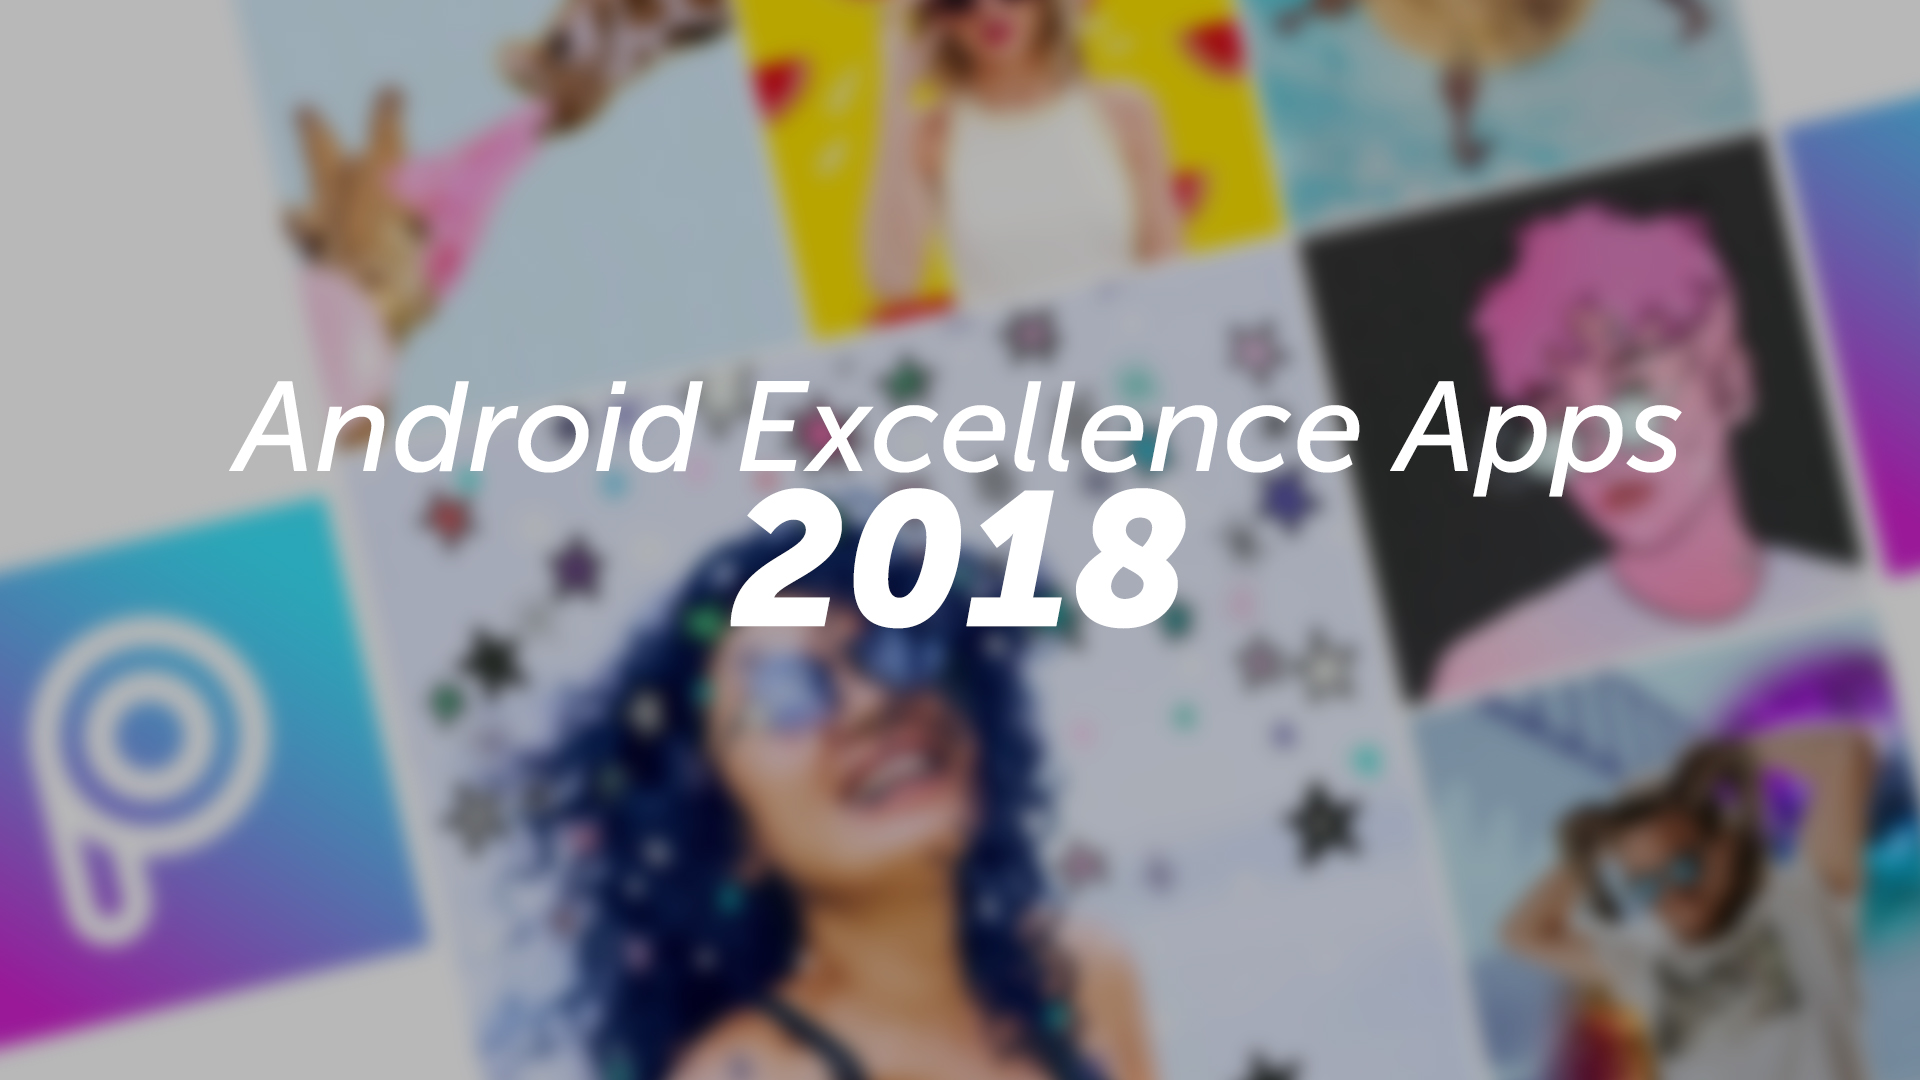 Android Excellence Apps 2018